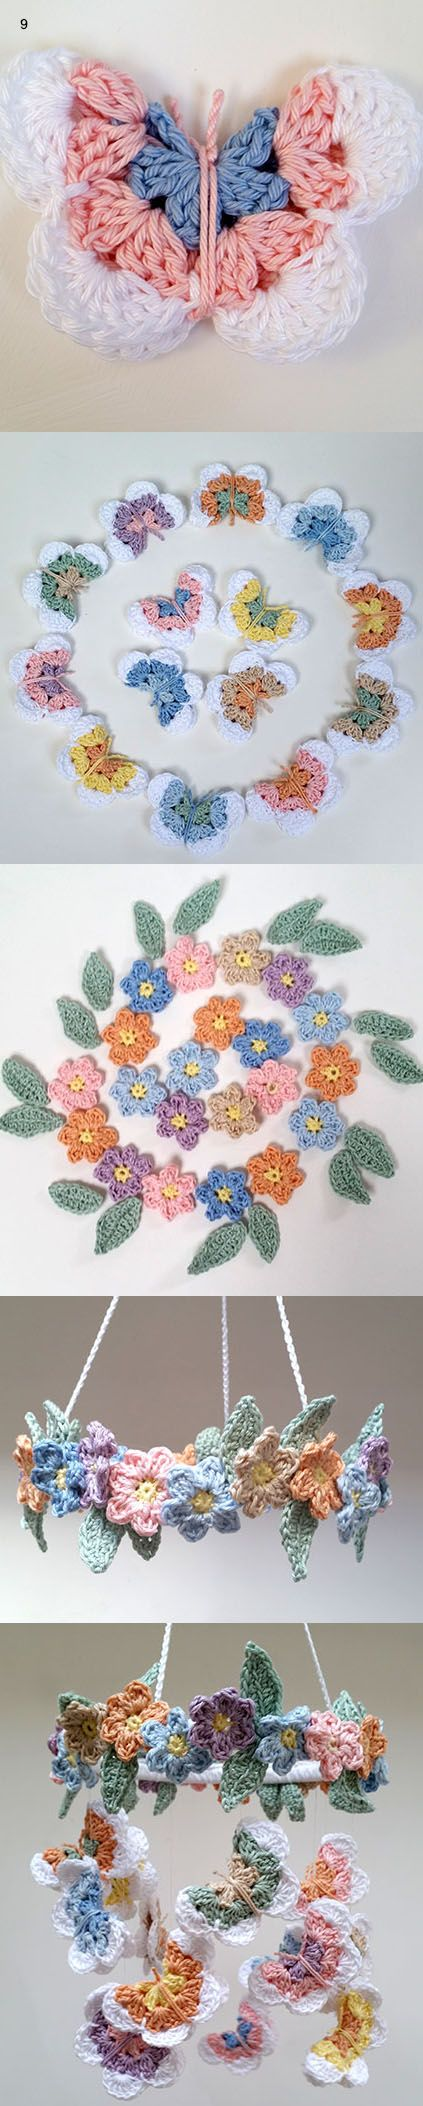 Make your own Crochet Butterfly & Flower Mobile with beautiful Planet Penny Pastel Cotton yarn.  Click to find the free PDF pattern on Planet Penny